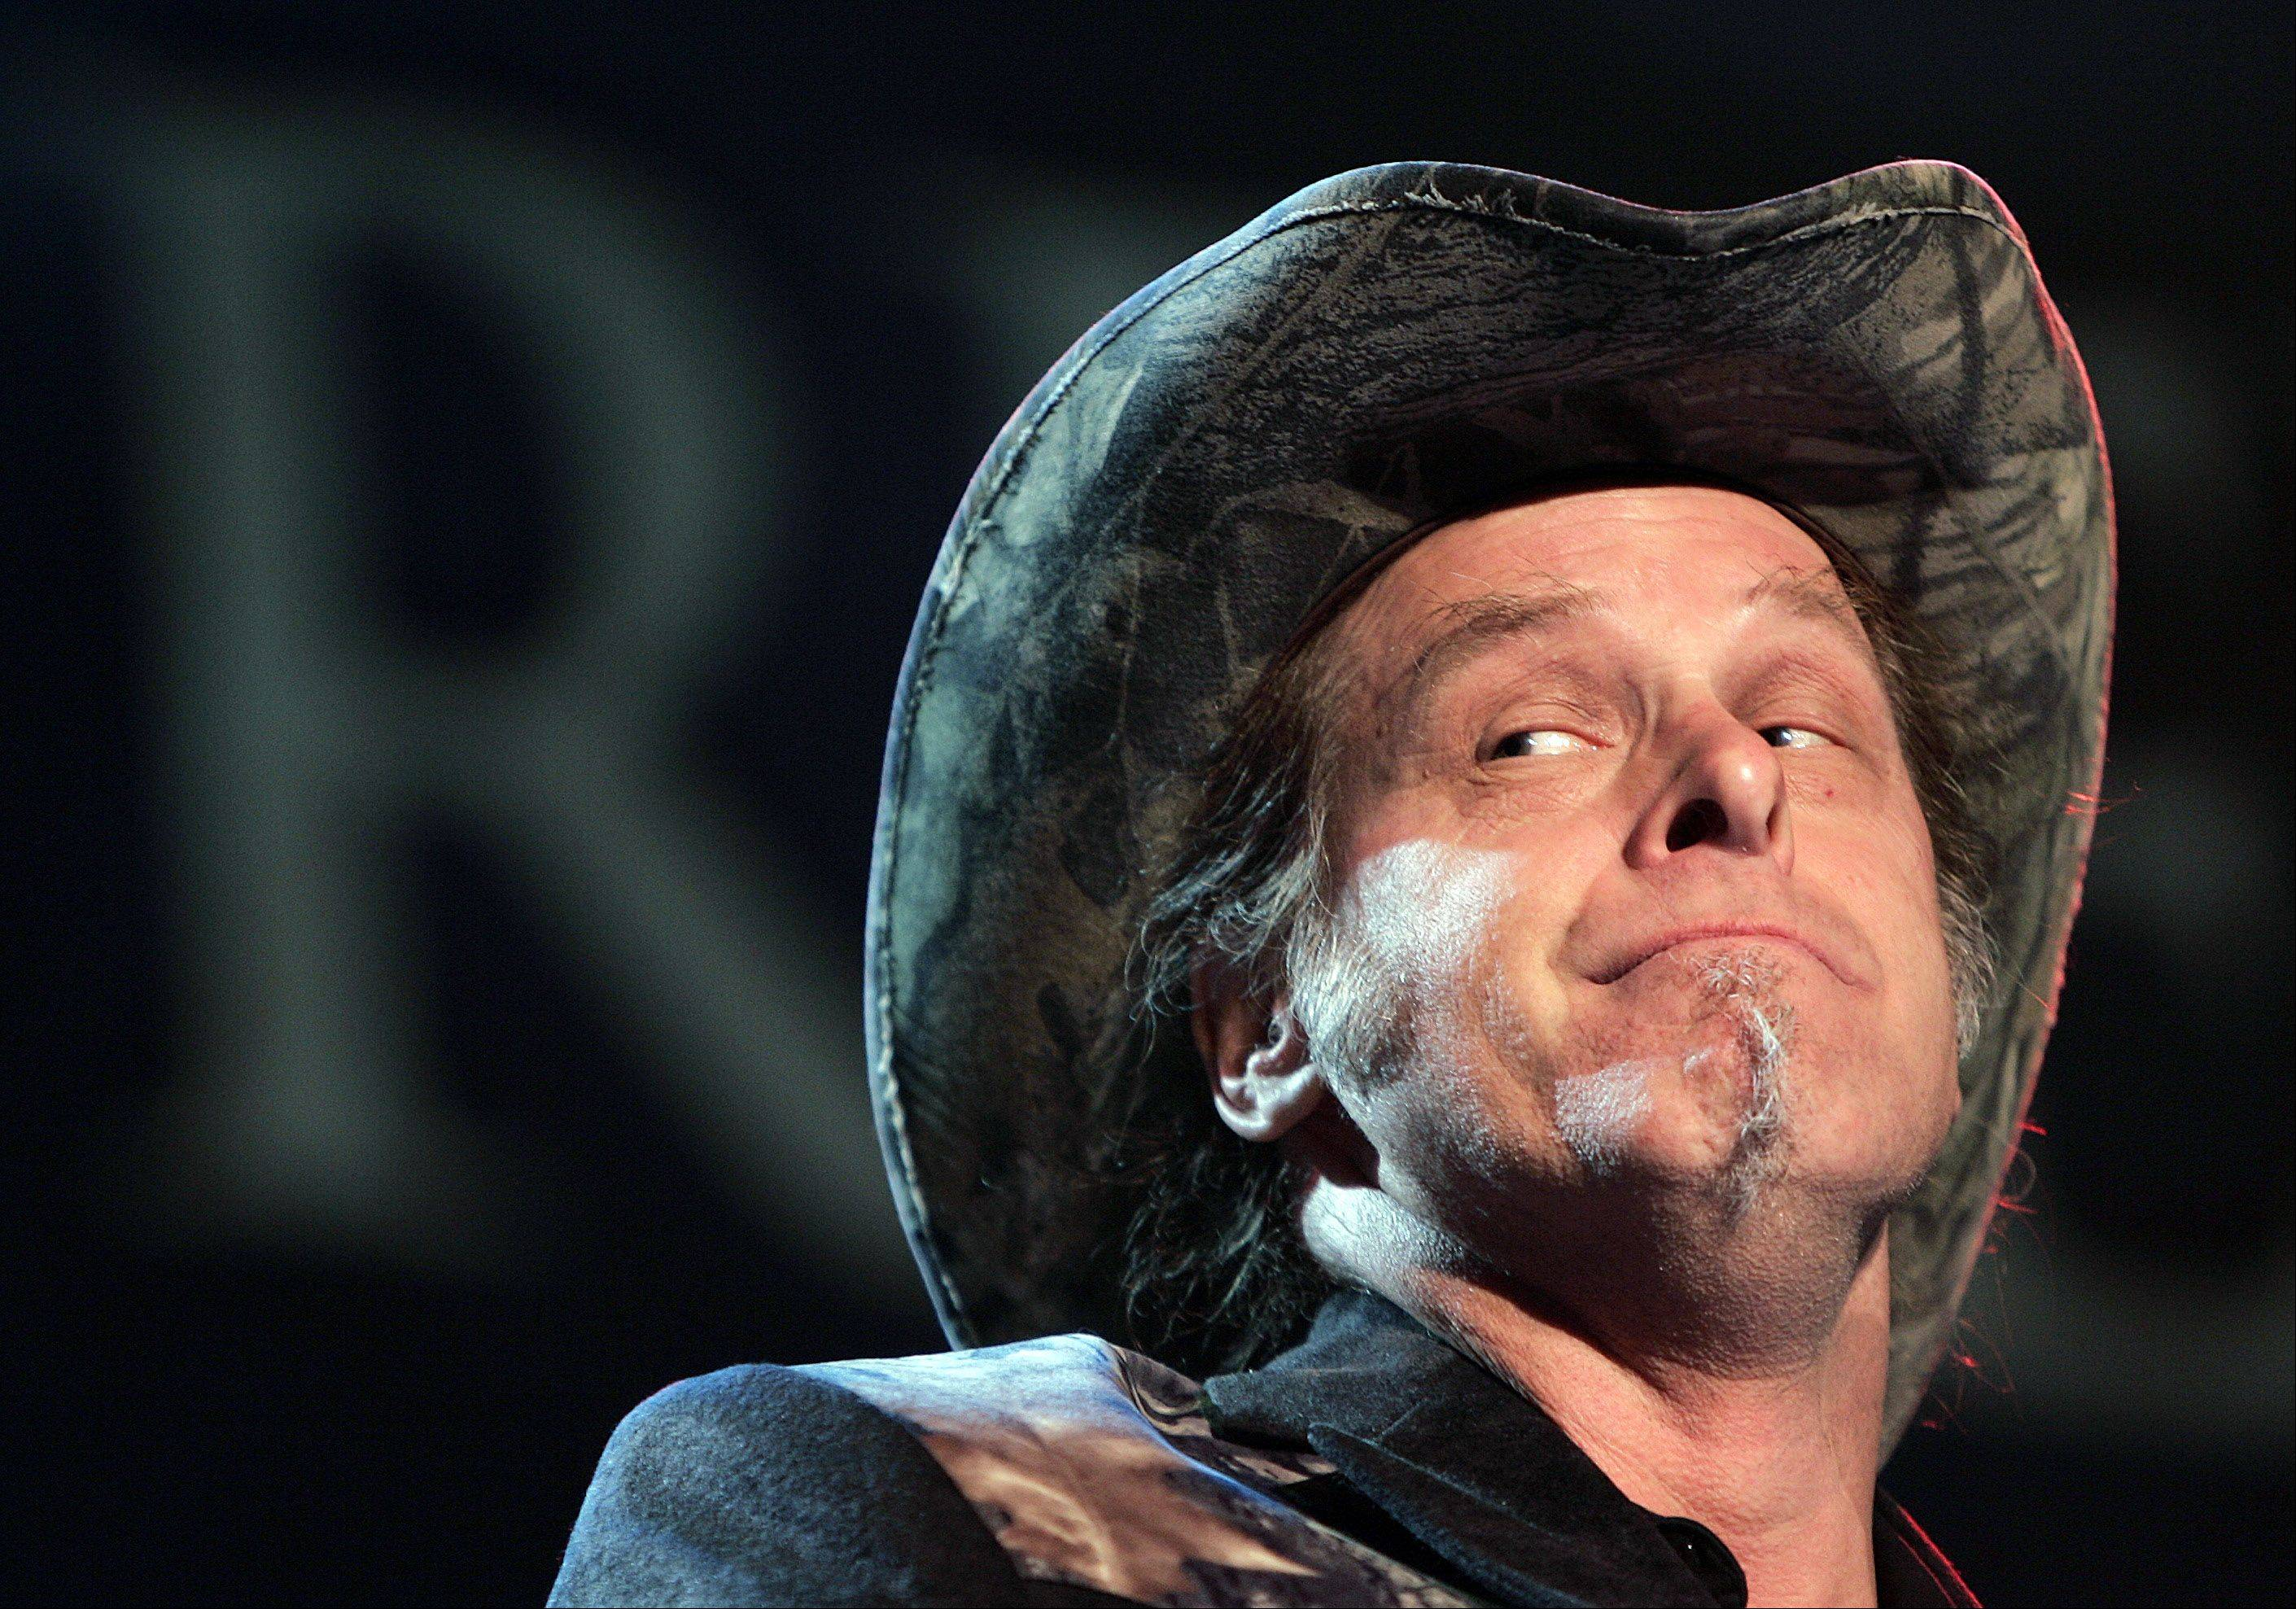 Ted Nugent performs during the opening ceremony of the 2006 National Rifle Association annual convention in Milwaukee.